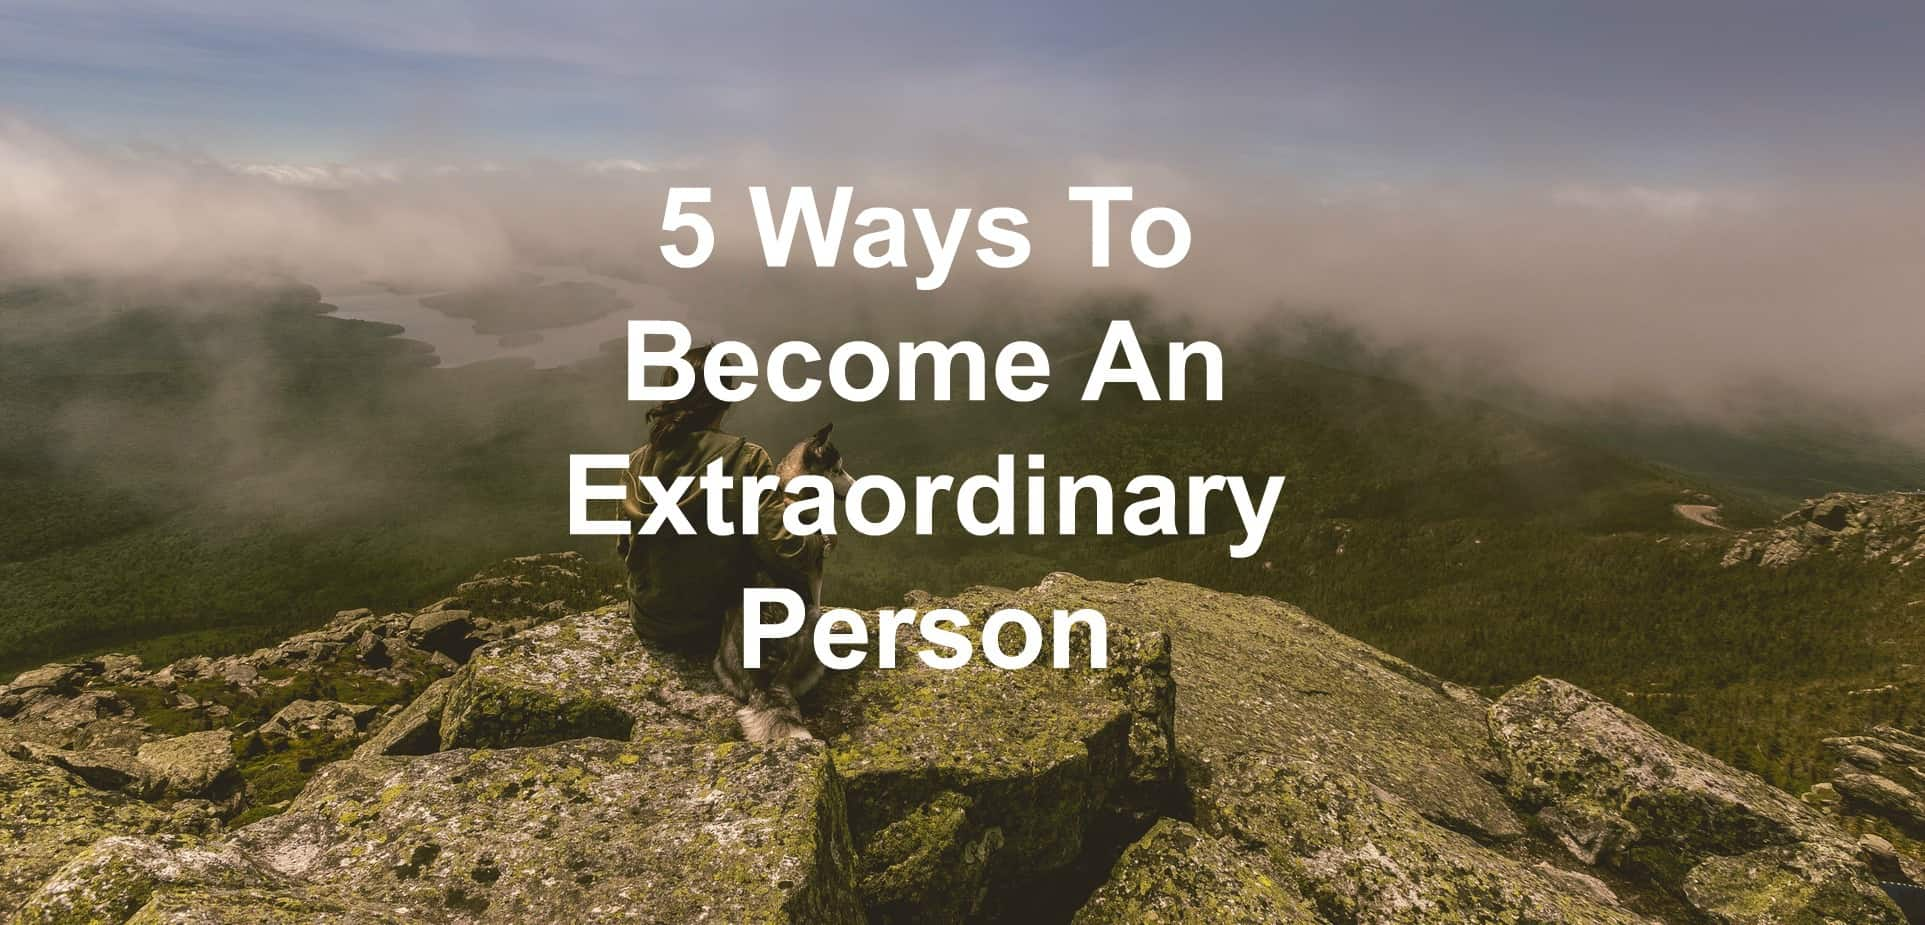 You can become extraordinary